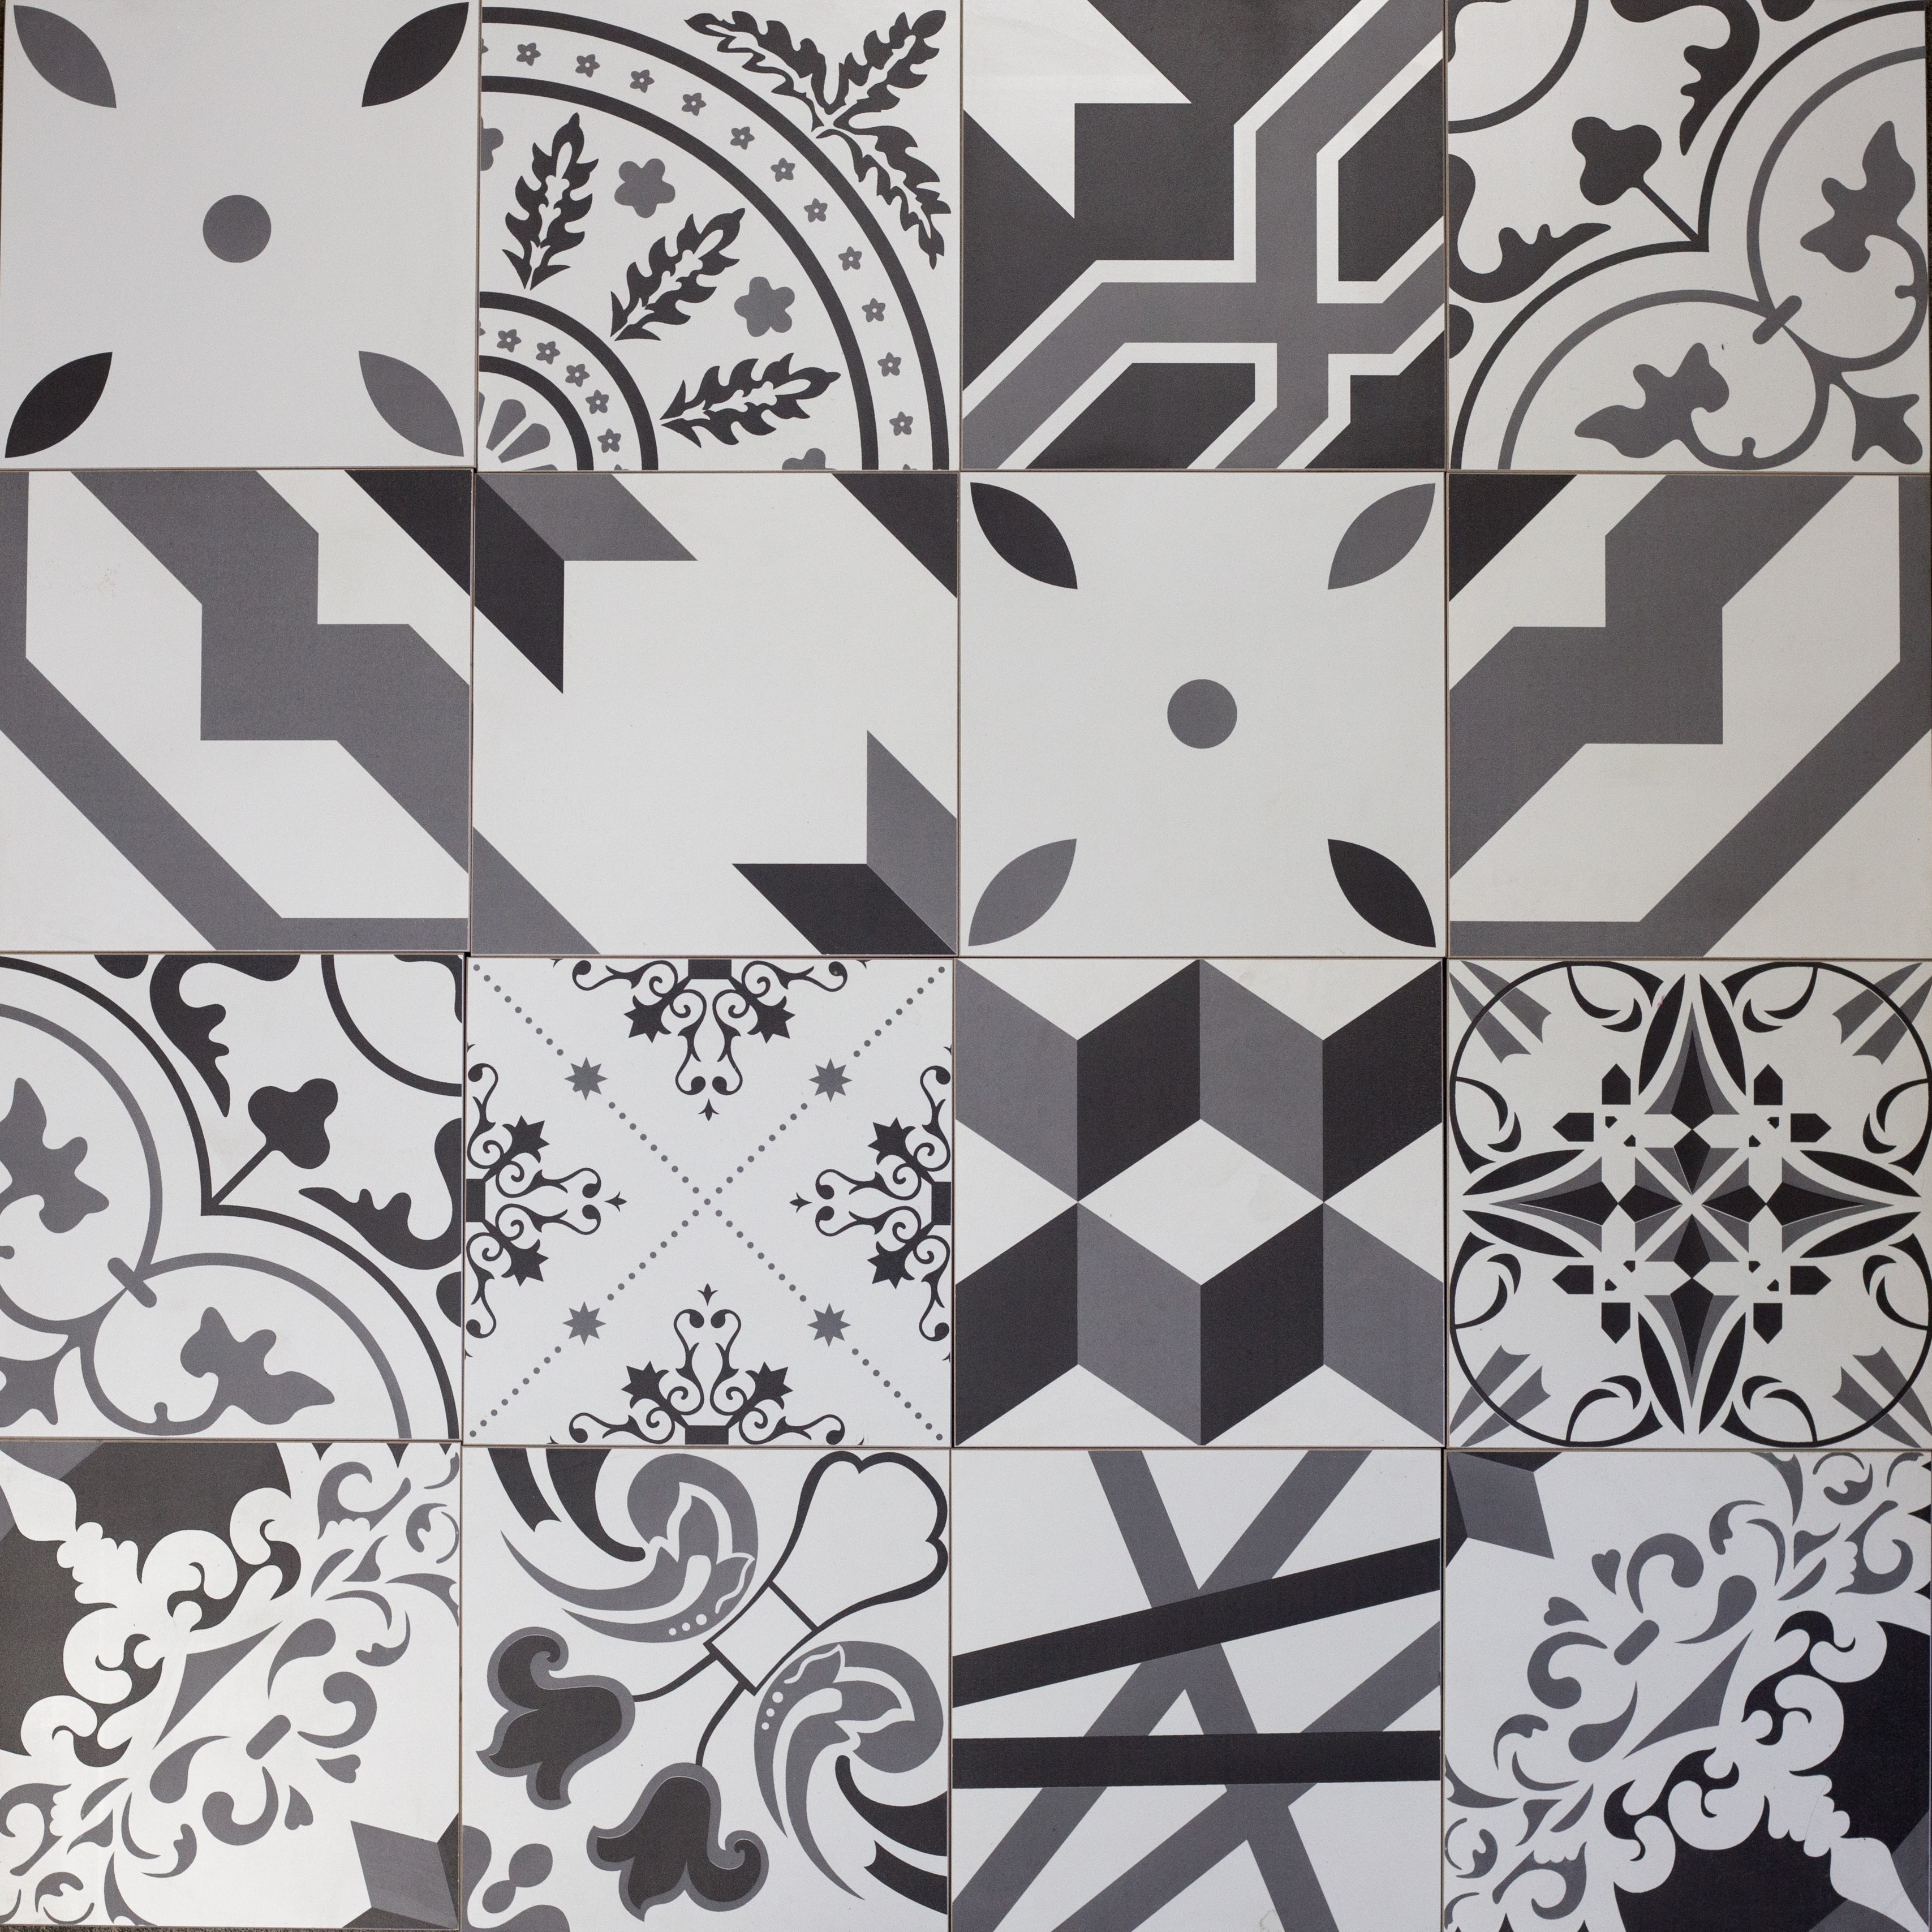 Grand Cement 8 in x 8 in Porcelain Field Tile in PERFECT NOTE (12 MIXED PATTERNS) Matte